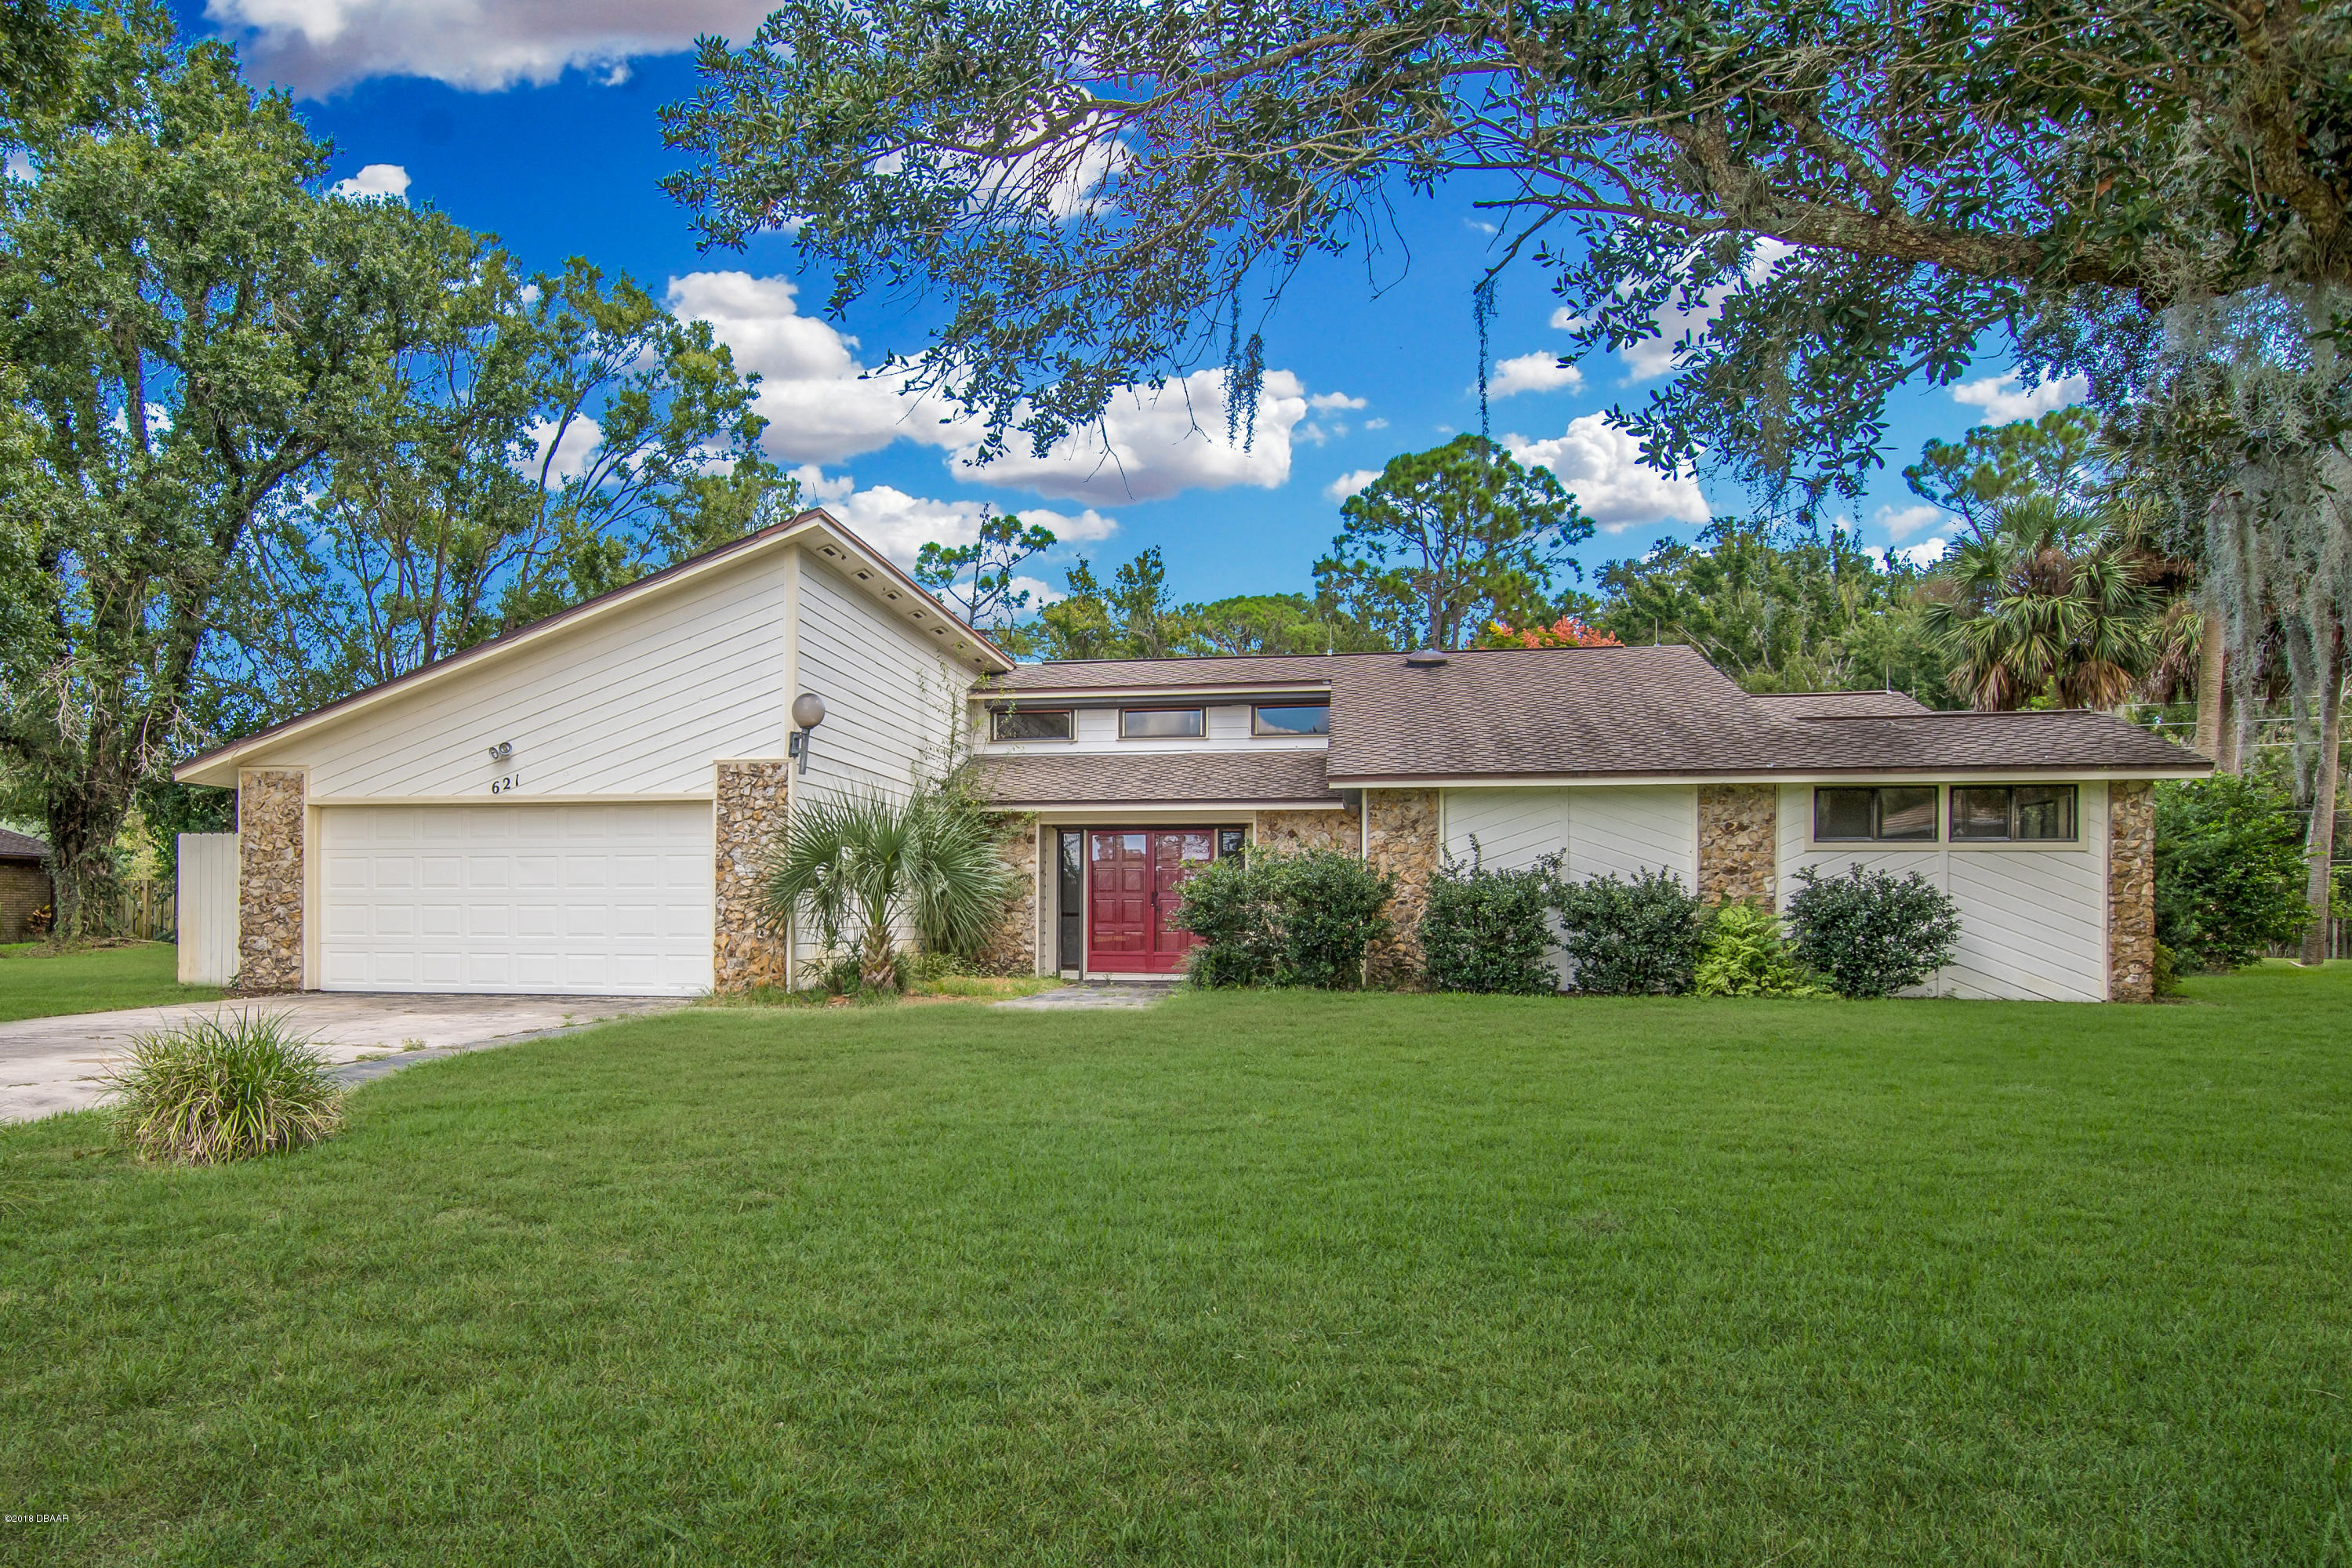 Photo of 621 Pelican Bay Drive, Daytona Beach, FL 32119